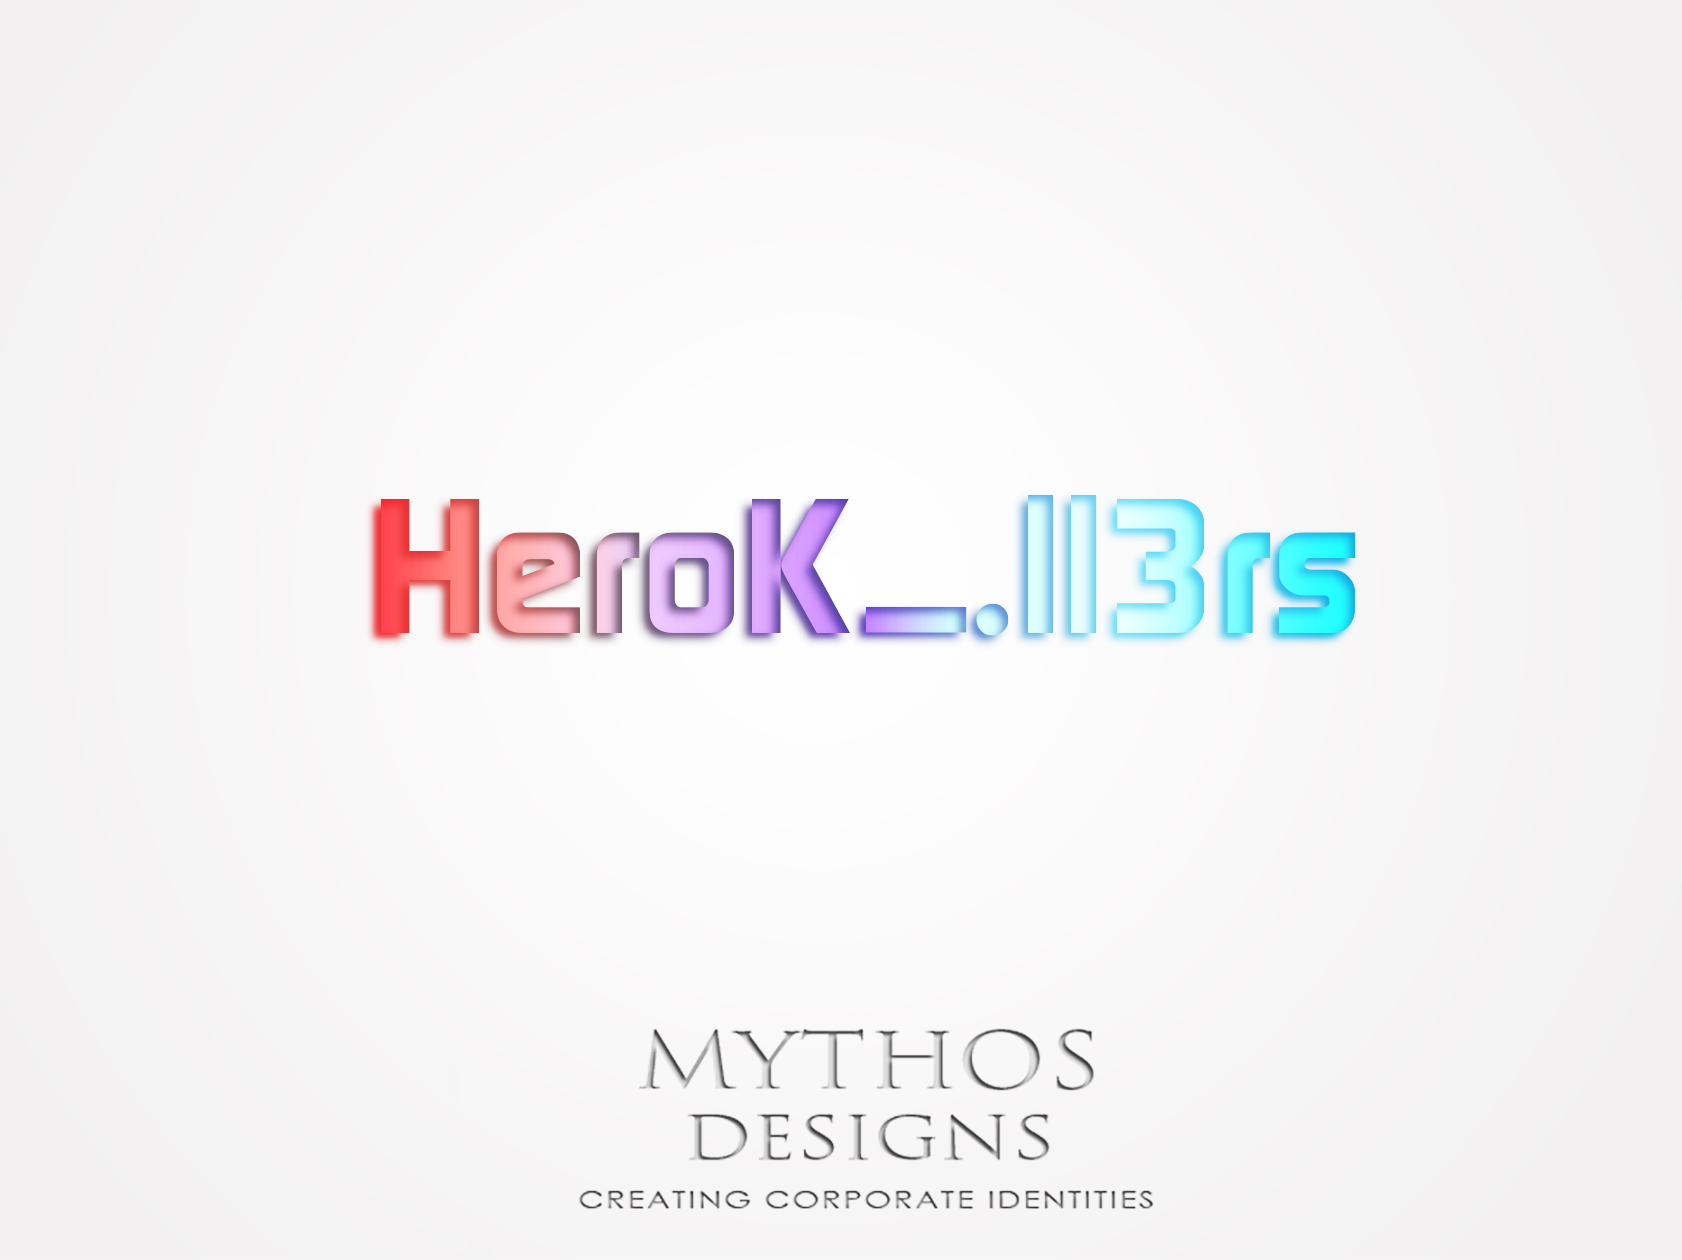 Logo Design by Mythos Designs - Entry No. 8 in the Logo Design Contest Fun Logo Design for HeroKill3rs.